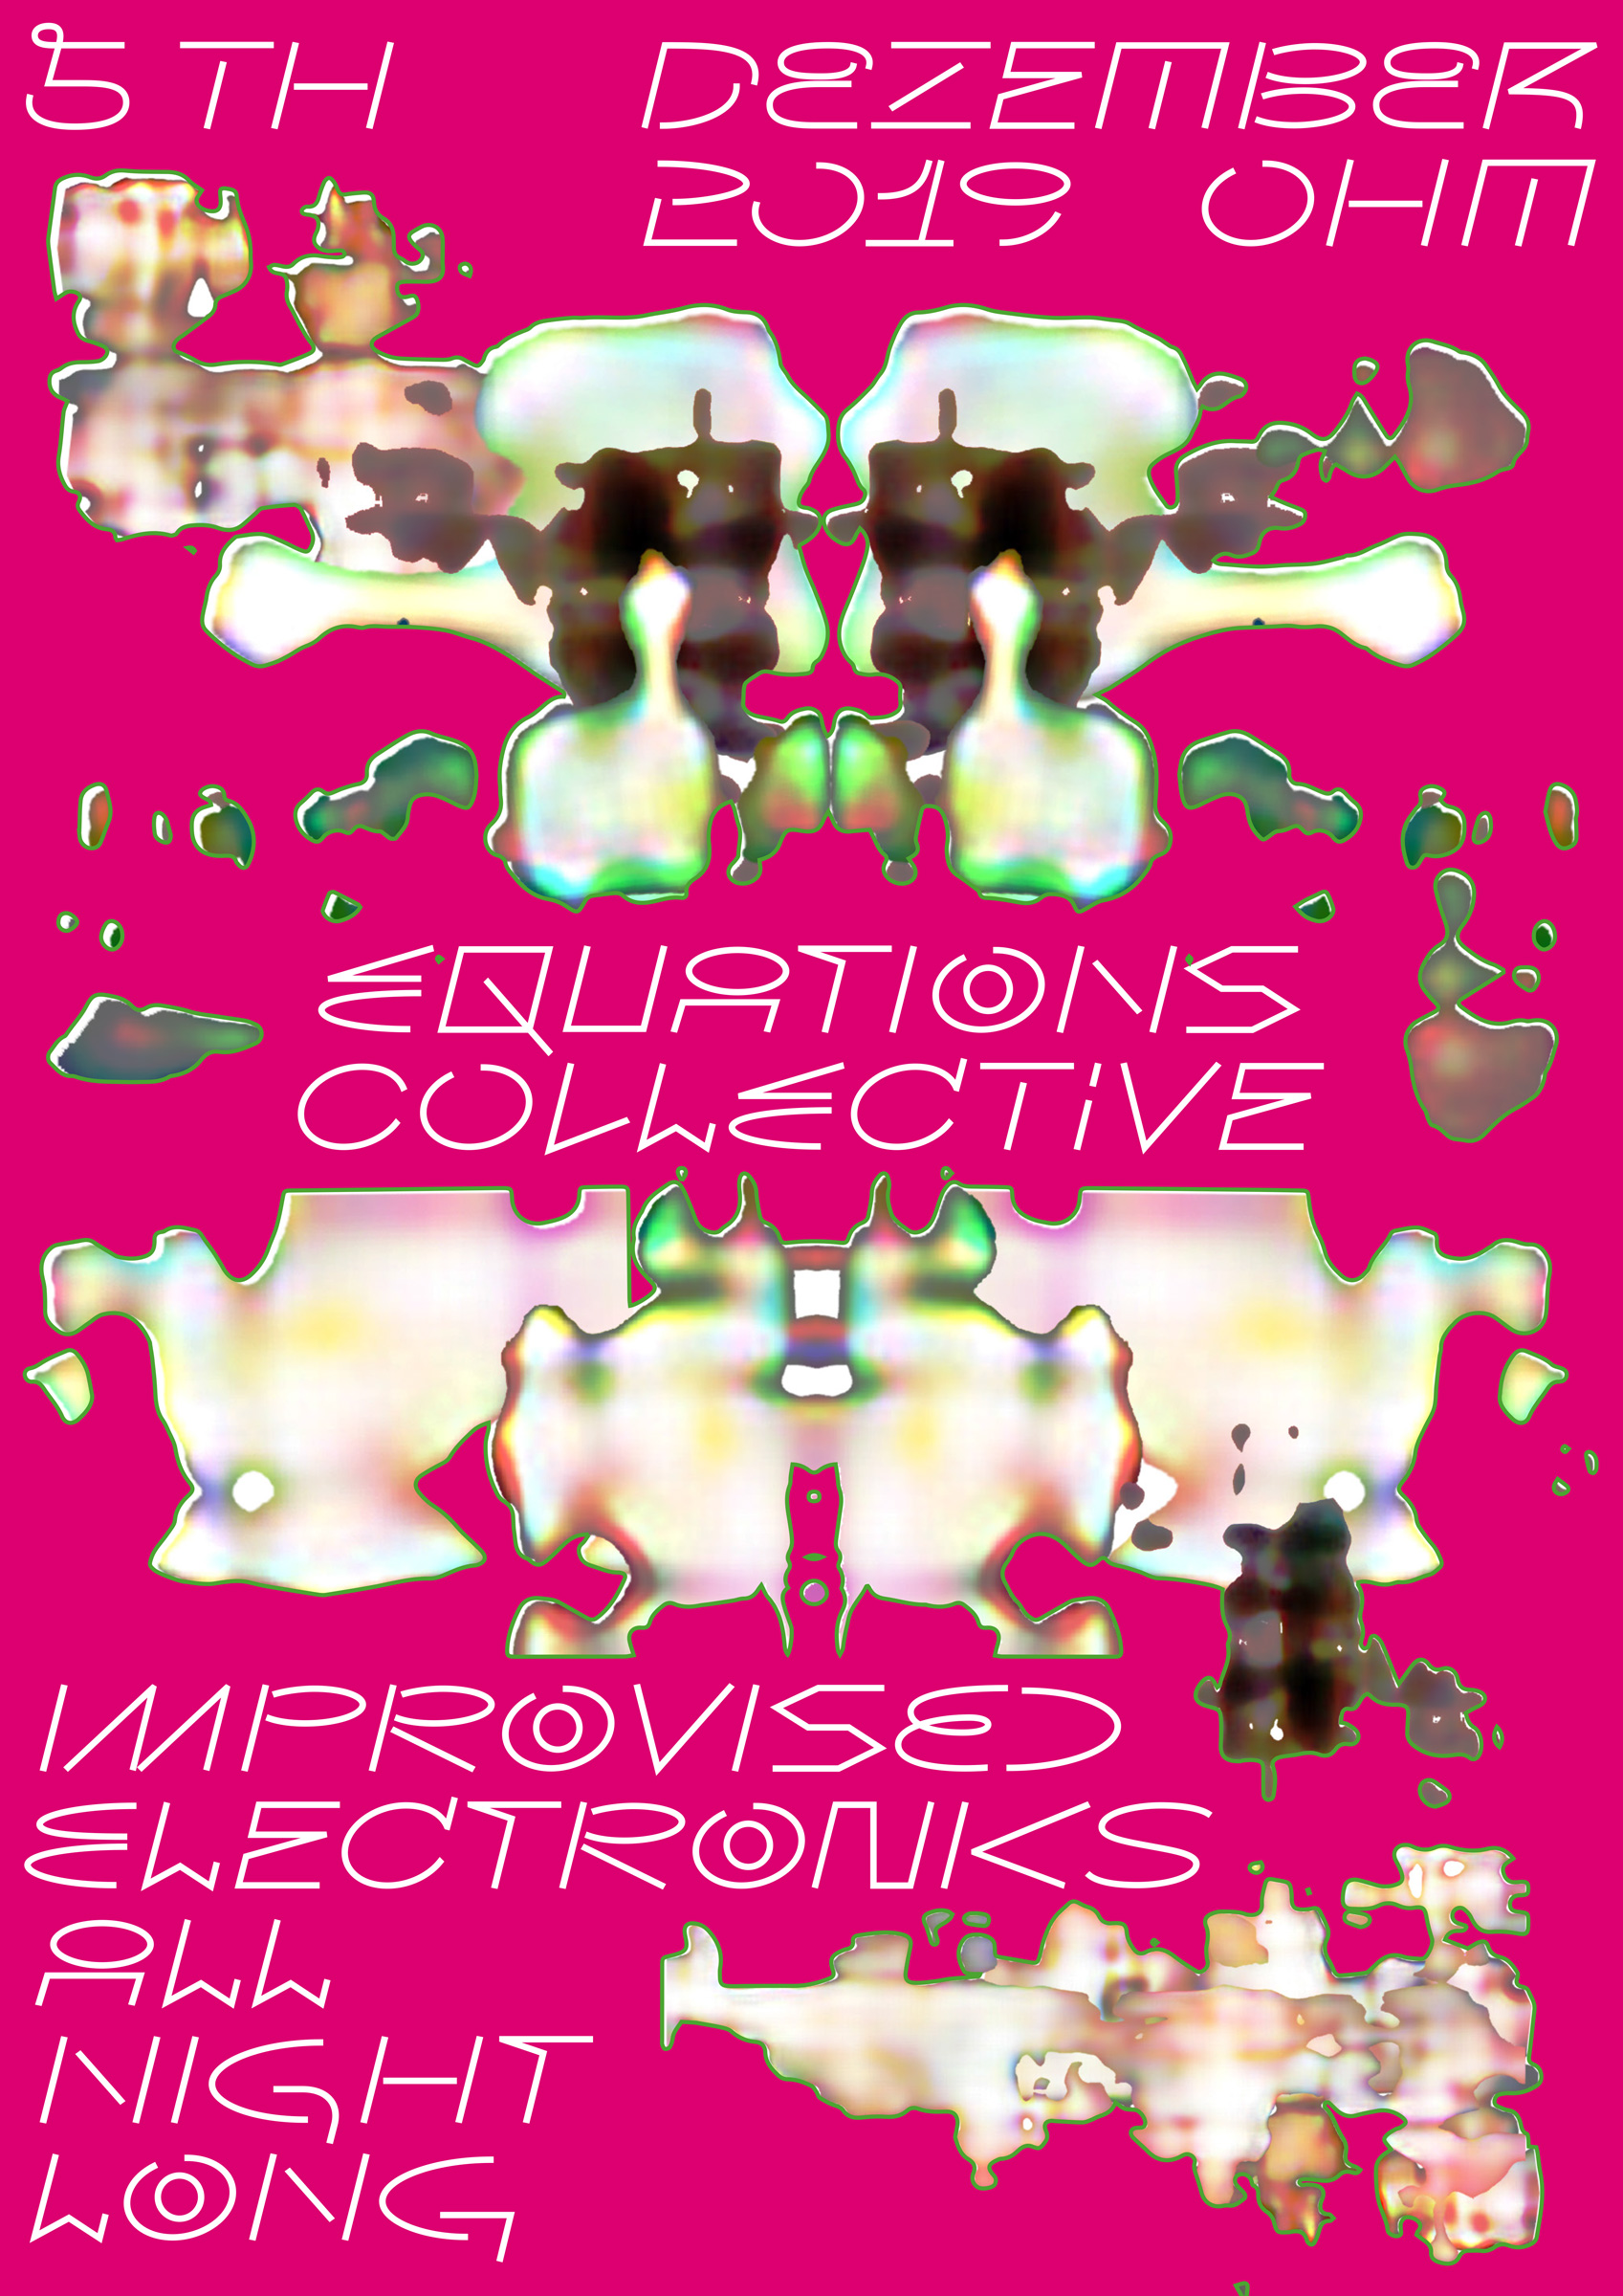 Equations - Improvised Electronics at OHM - 05.12.2019